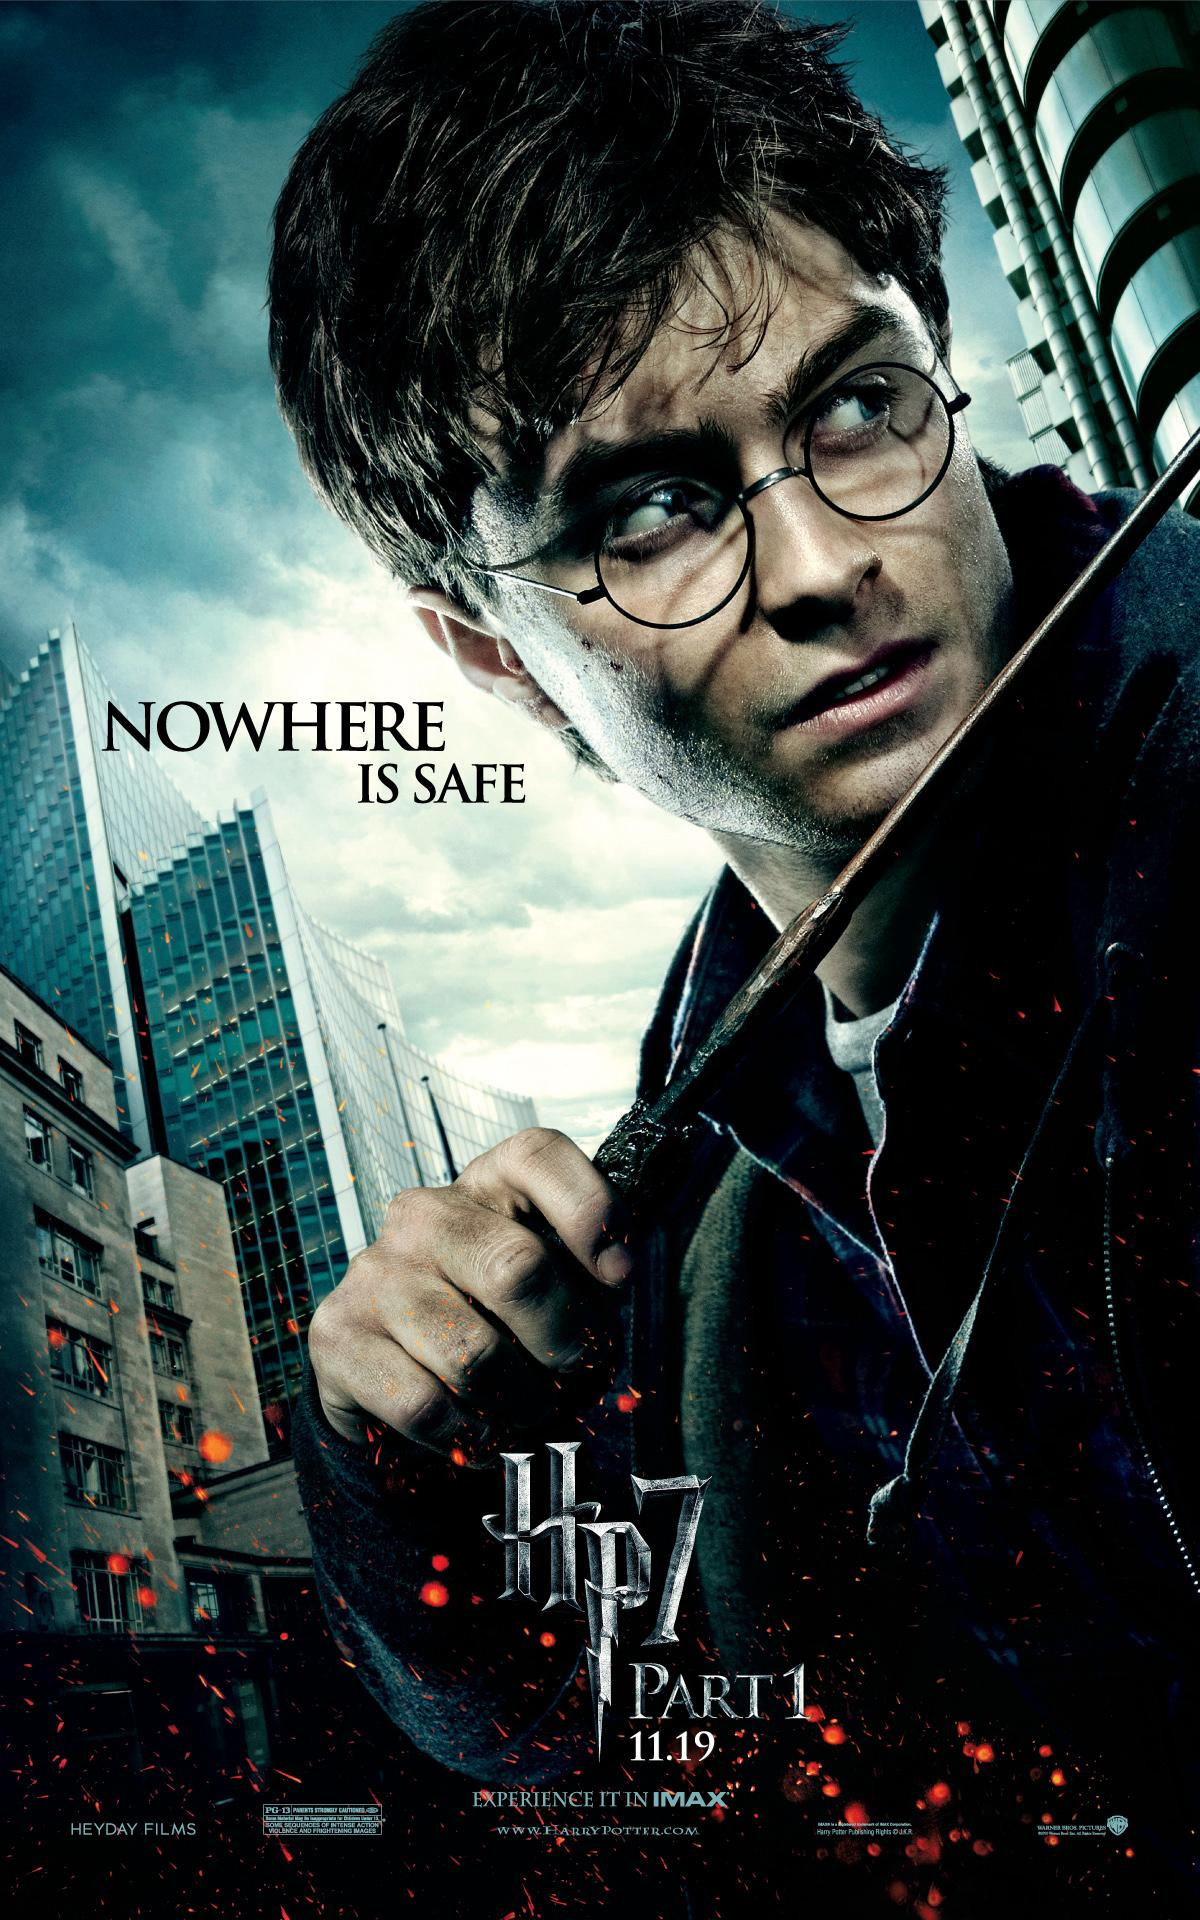 'Deathly Hallows: Part 1' Harry poster